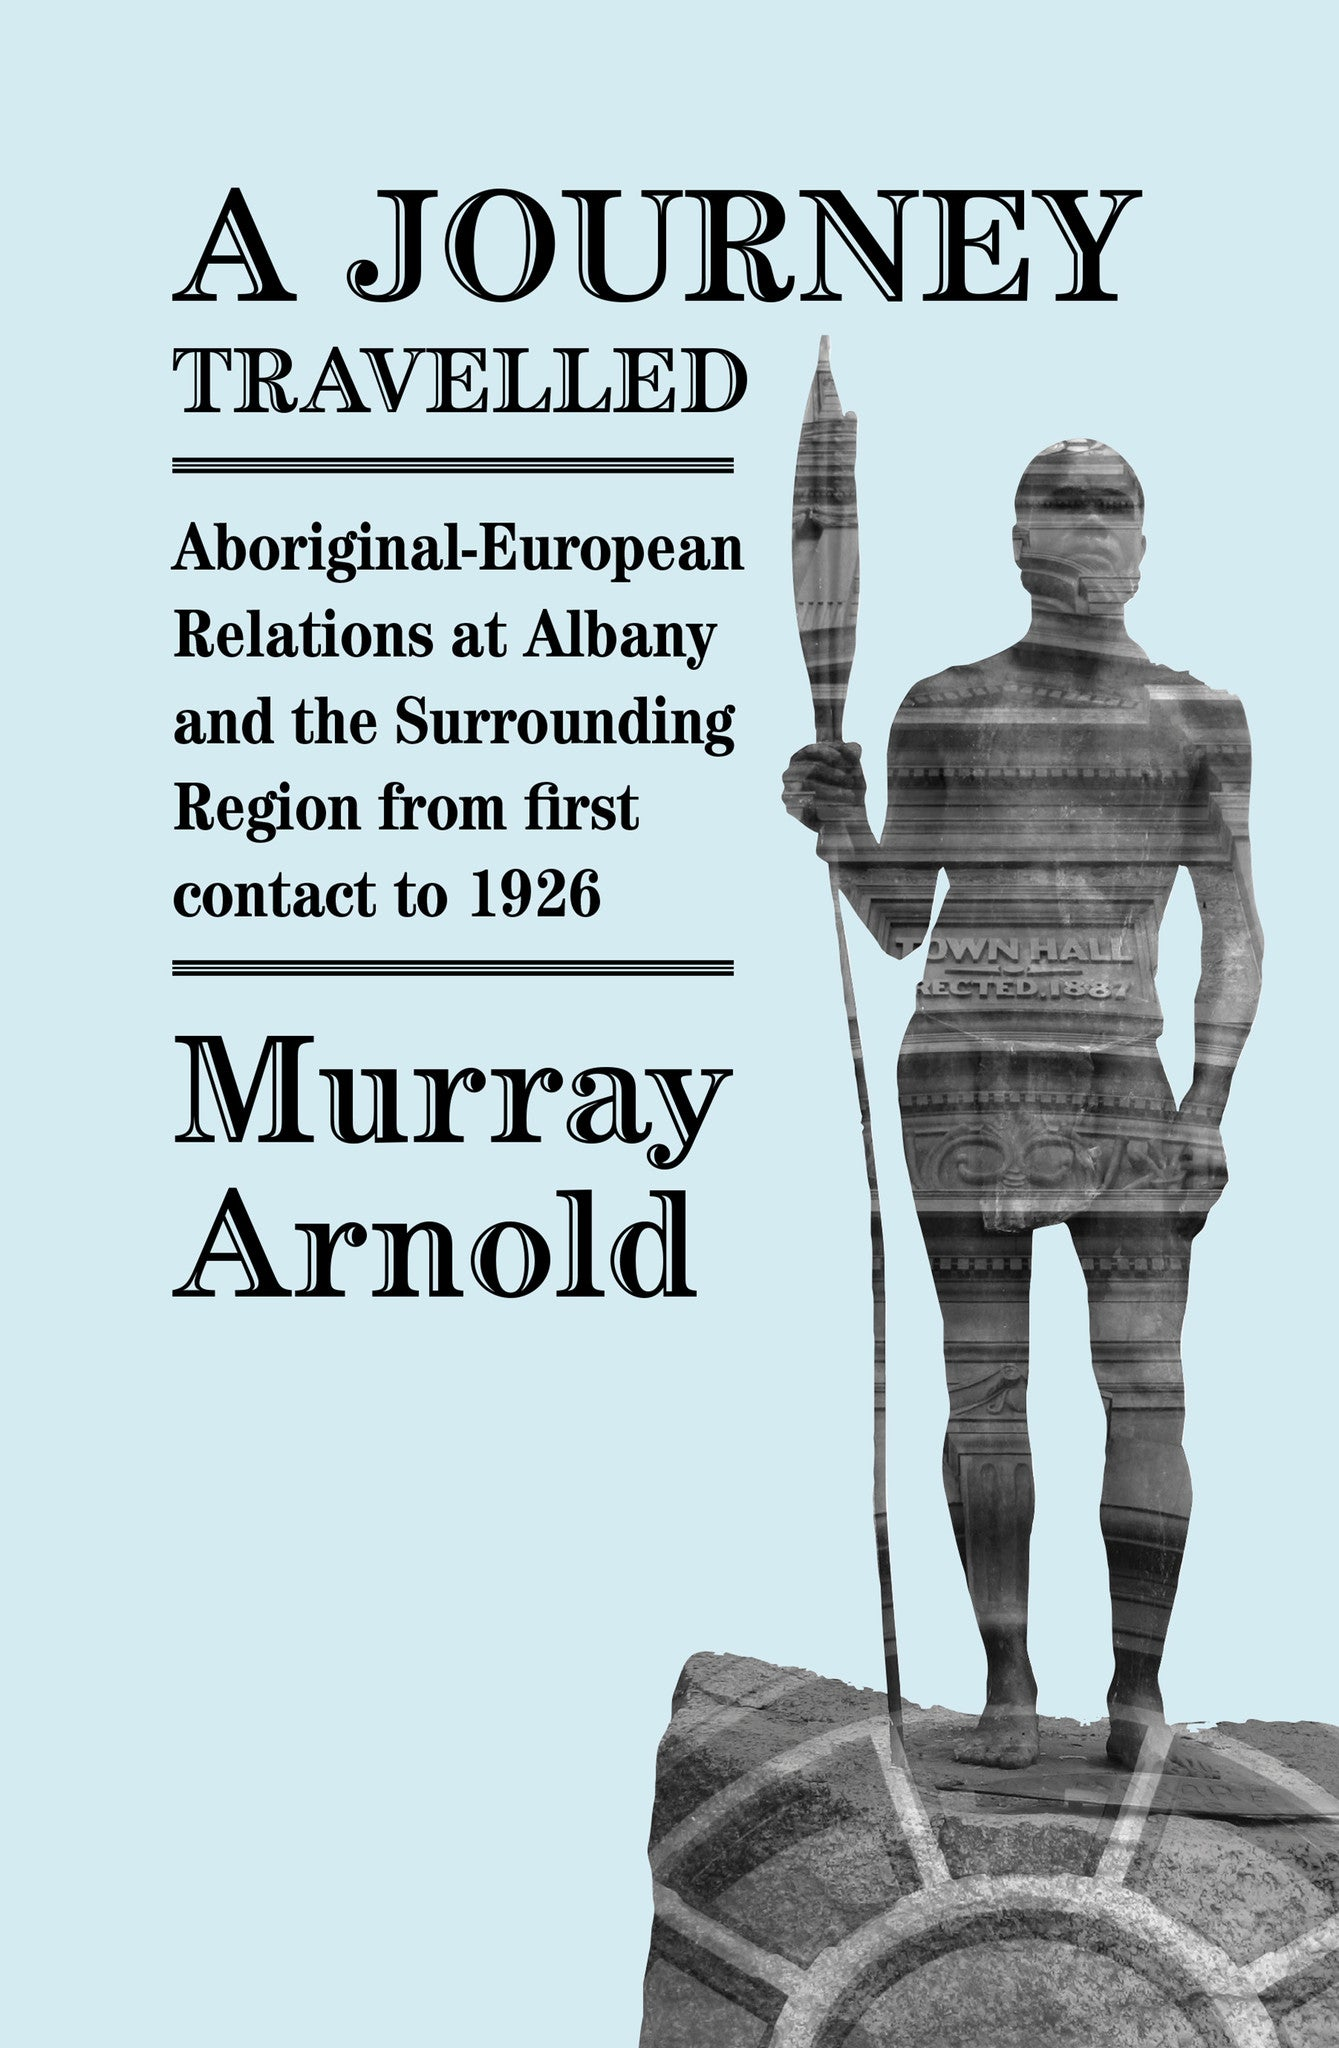 A Journey Travelled: Aboriginal-European relations at Albany and surrounding regions from first colonial contact to 1926